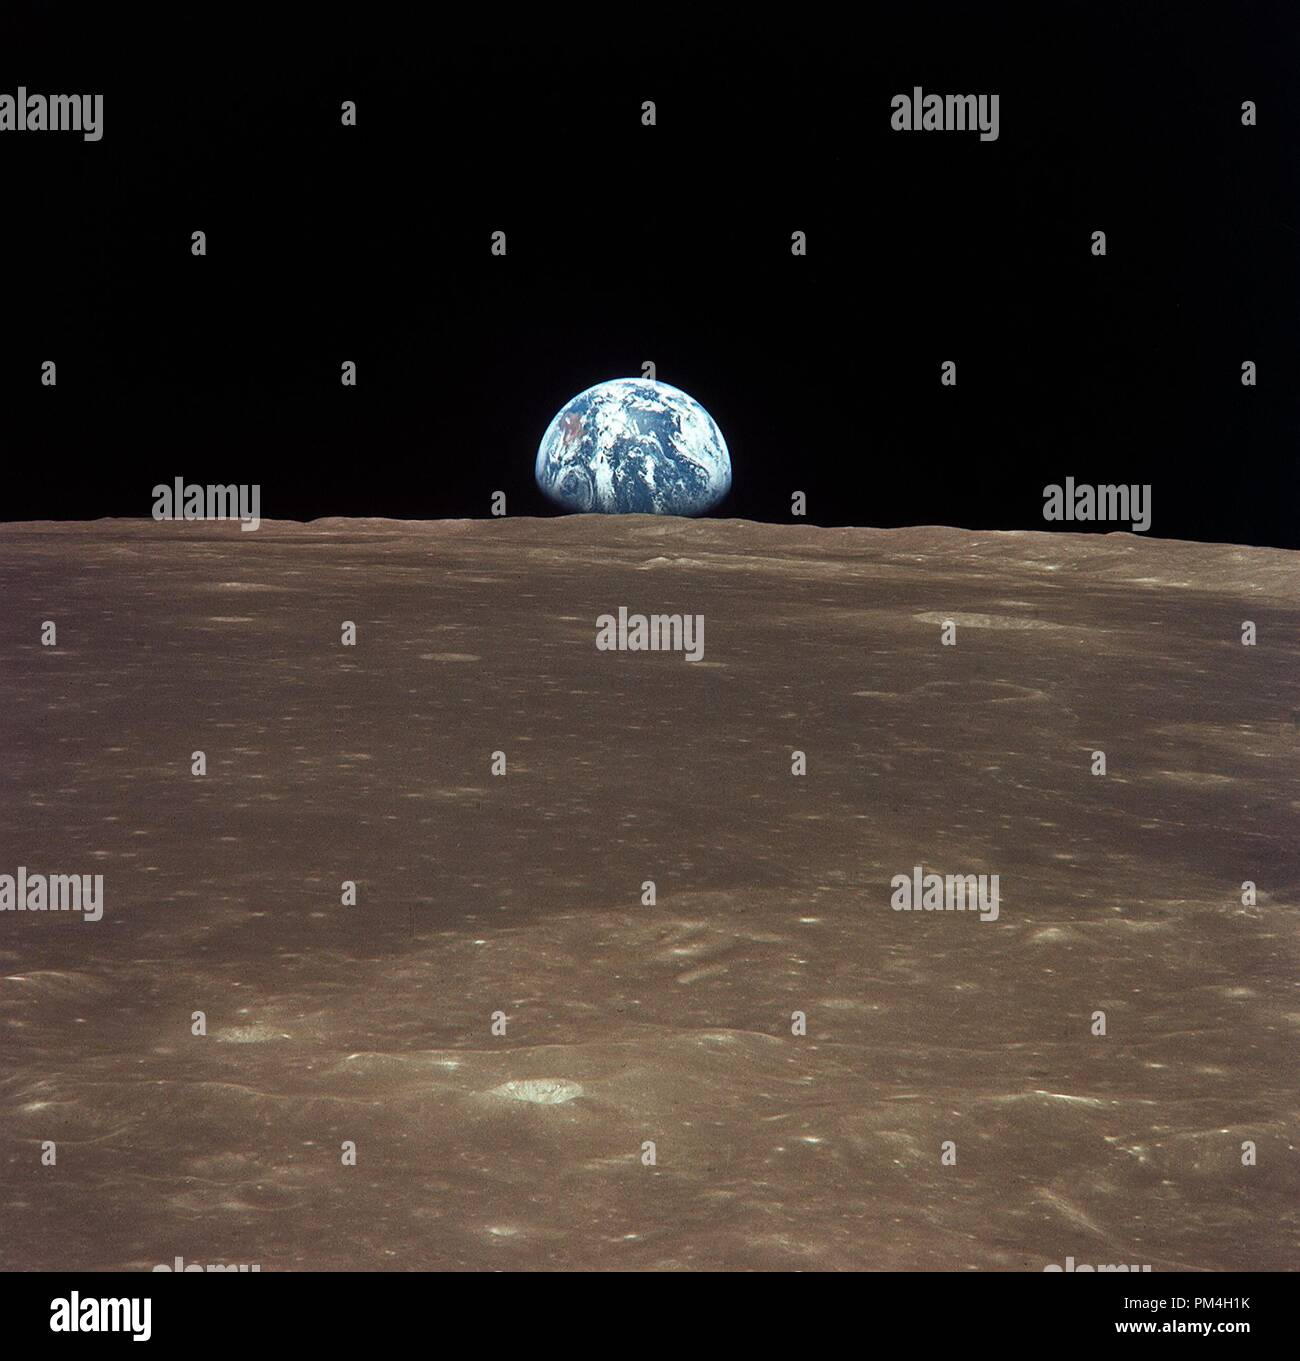 (16-24 July 1969) --- This view from the Apollo 11 spacecraft shows Earth rising above the moon's horizon. The lunar terrain pictured is in the area of Smyth's Sea on the nearside. Coordinates of the center of the terrain are 86 degrees east longitude and 3 degrees north latitude. While astronauts Neil A. Armstrong, commander, and Edwin E. Aldrin Jr., lunar module pilot, descended in the Lunar Module (LM) 'Eagle' to explore the Sea of Tranquility region of the moon, astronaut Michael Collins, command module pilot, remained with the Command and Service Modules (CSM) 'Columbia' in lunar orbit. - Stock Image